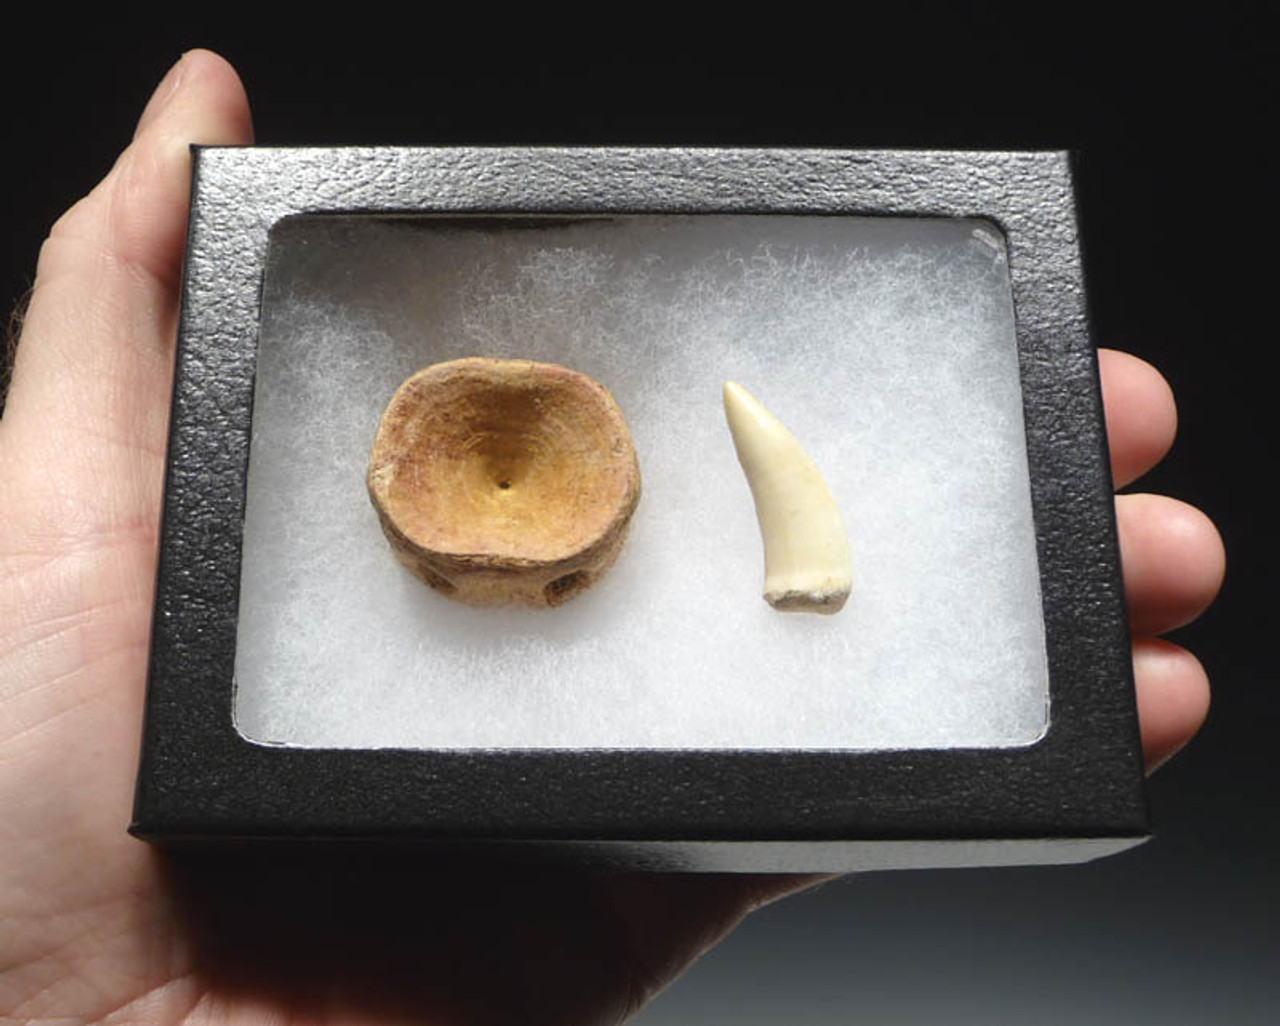 F077 - CRETACEOUS SABER-TOOTHED ENCHODUS FISH FOSSIL VERTEBRA AND FANG SET